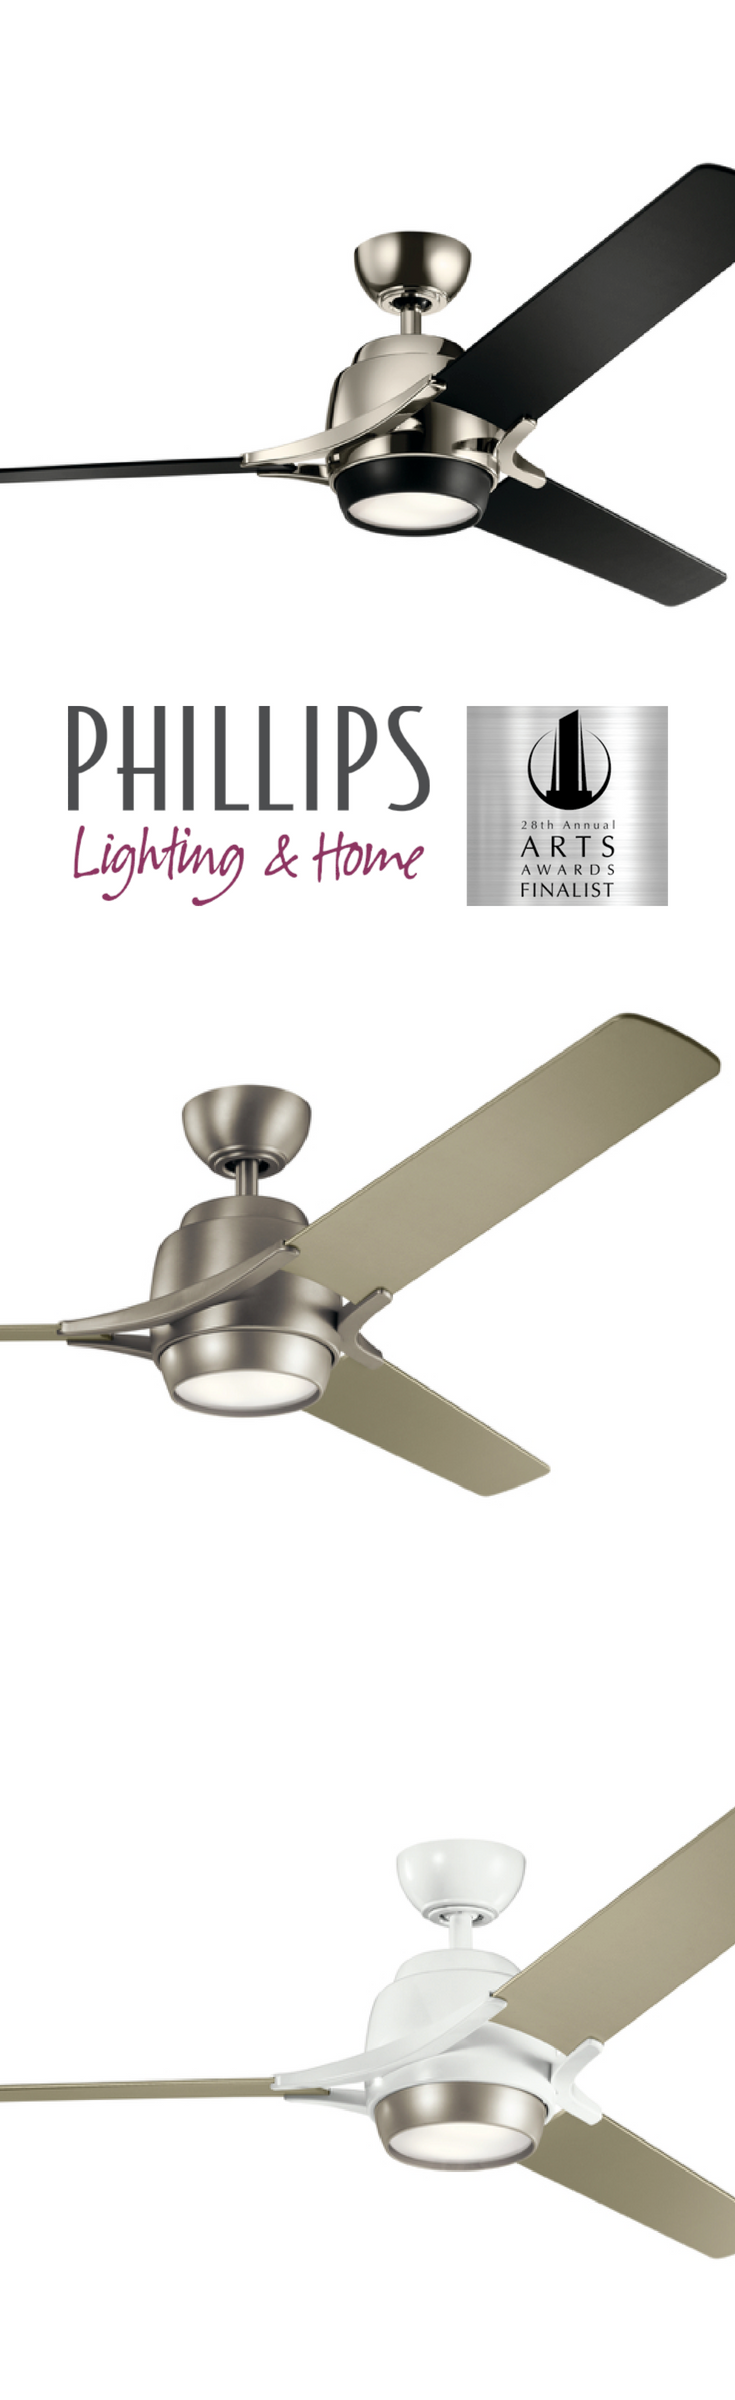 Home 4 Phillips lighting, Ceiling fan, Heating and air